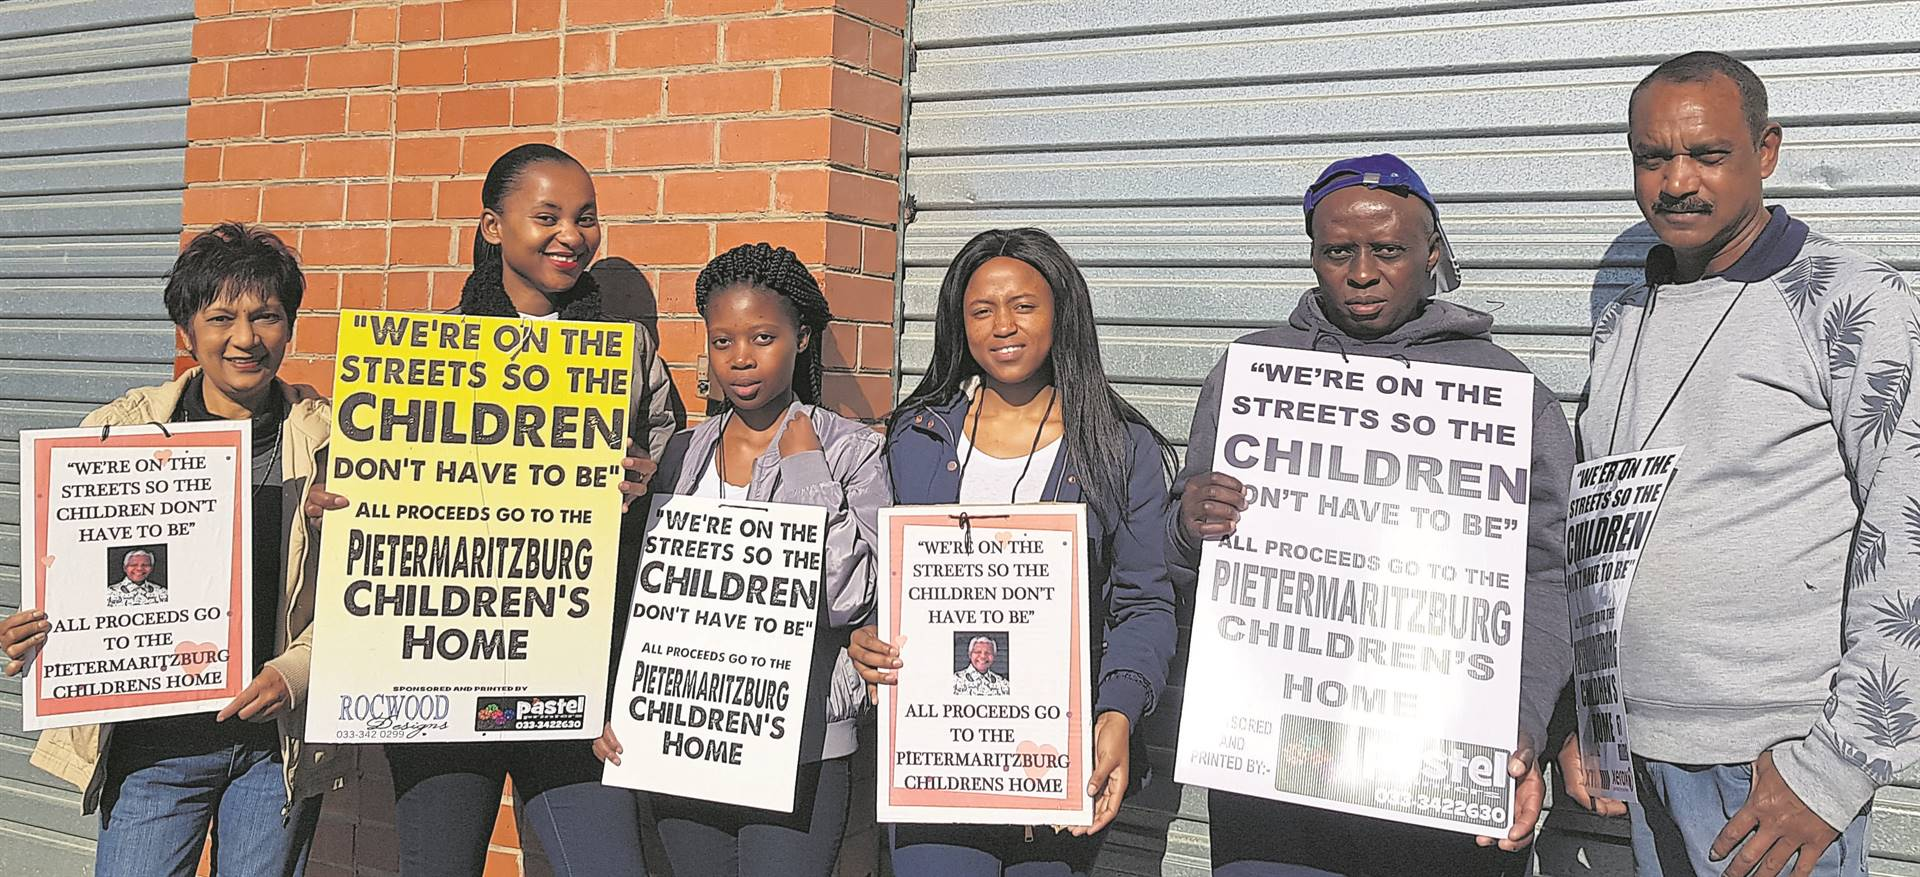 The Pietermaritzburg Children's Home will hold their annual Mandela Day street collection drive on July 18. They will be running a morning and lunchtime drive and invite any interested companies/individuals to contact them should they like to participate. Join them to ensure your 67 minutes are well-spent. For more information e-mail pr@pch.org.za or contact Sine at 033 387 4004. An appeal is made to the public to support the sincere volunteers on the roads on the morning.Showing their support for the initiative is (from left) Sheena Ramdial, Sinethemba Mzobe, Thande Mavundla, Msomi Zandile­, Michael Madlala, and Mervyn Naidoo. PHOTO: byrone athman